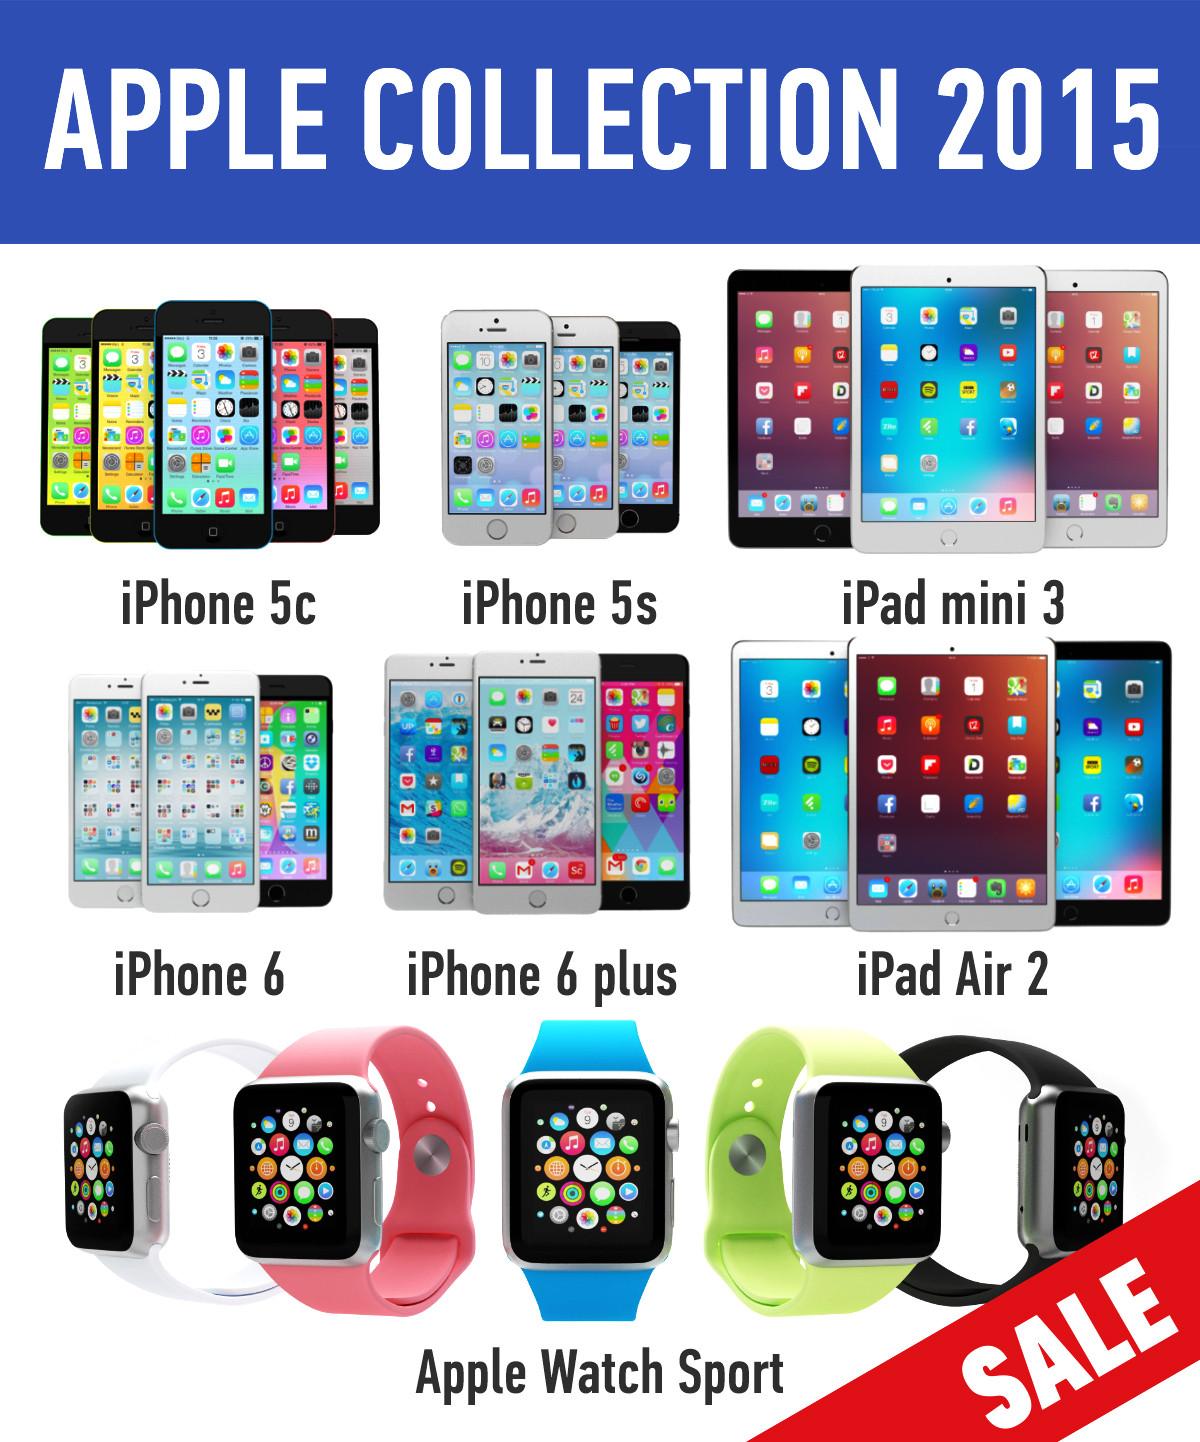 Apple electronics collection 2015